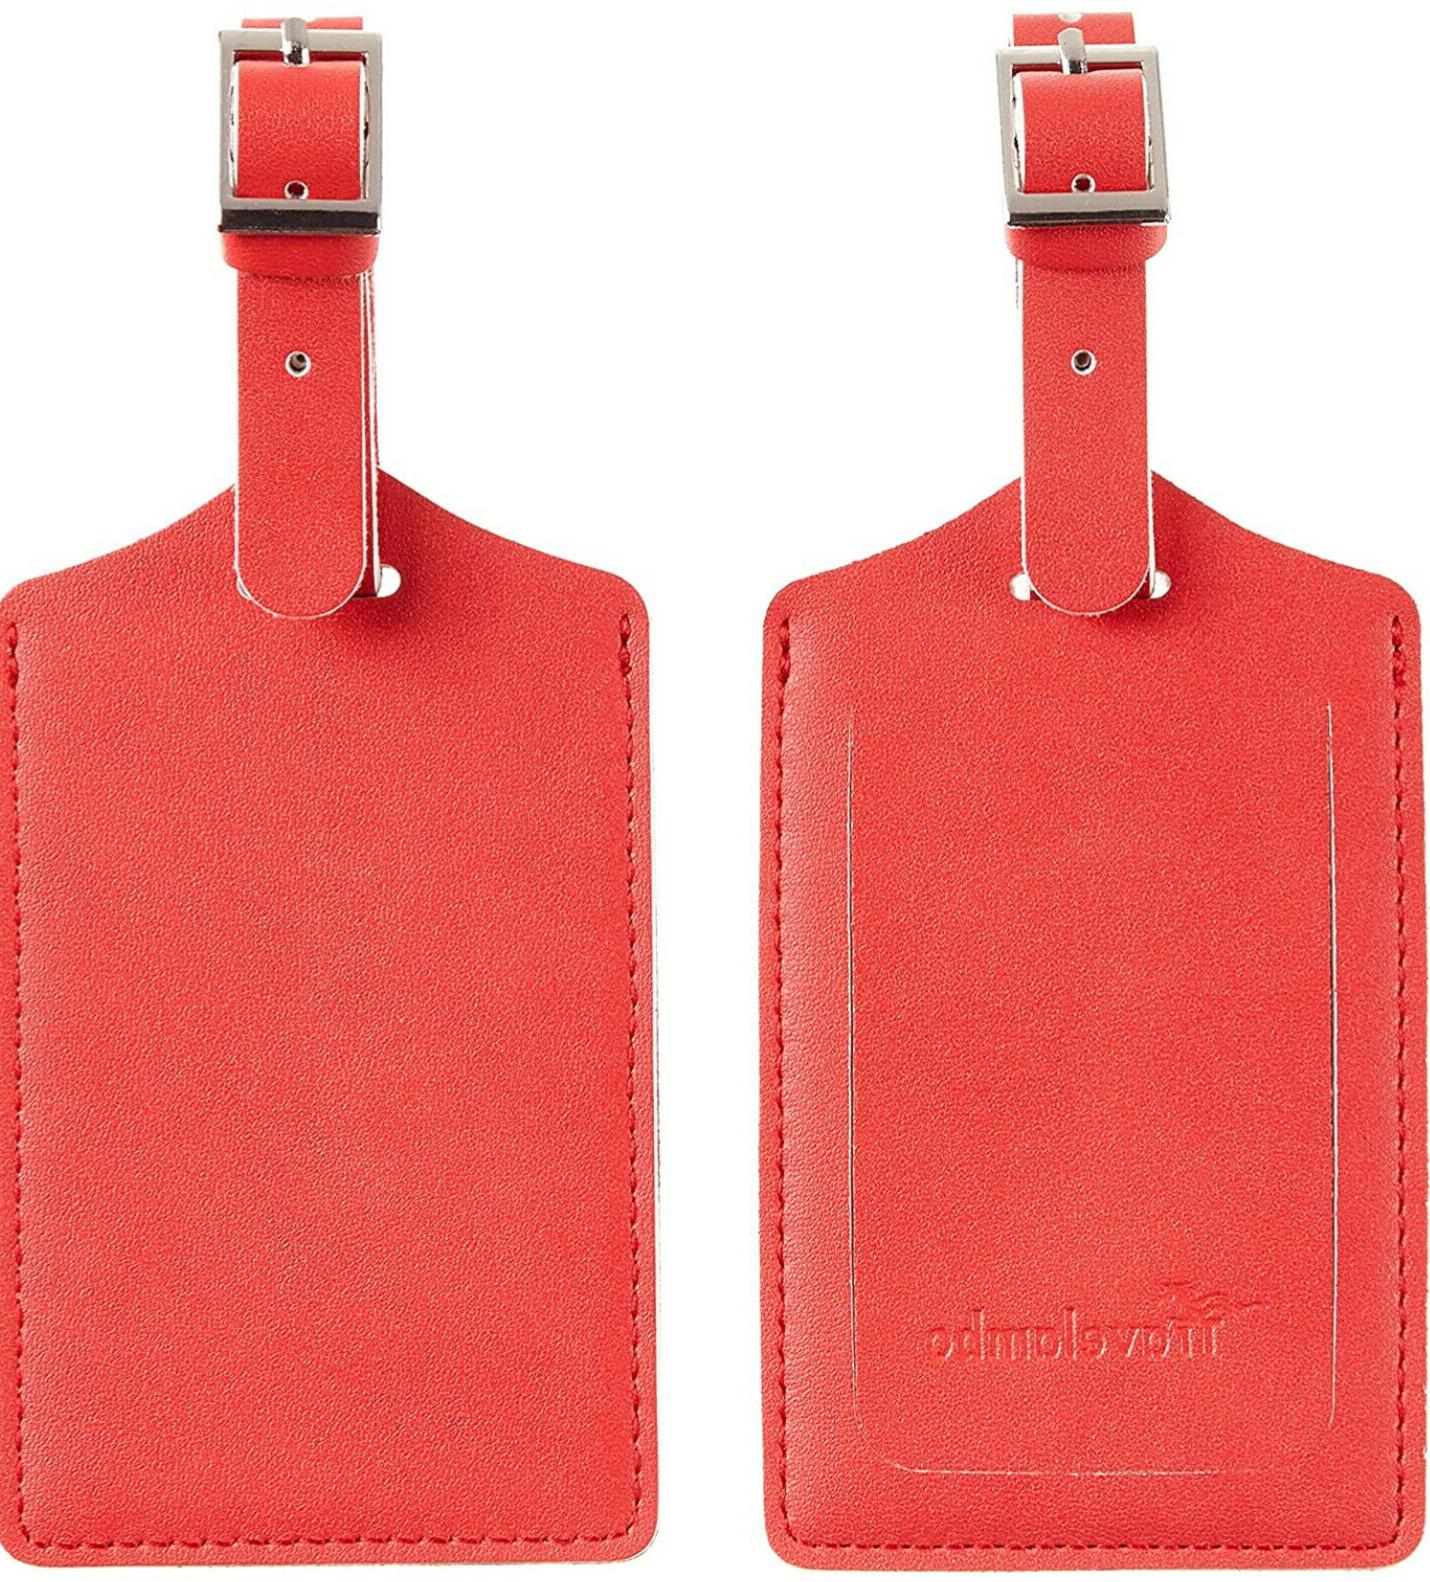 red luggage tags leather privacy protection travel